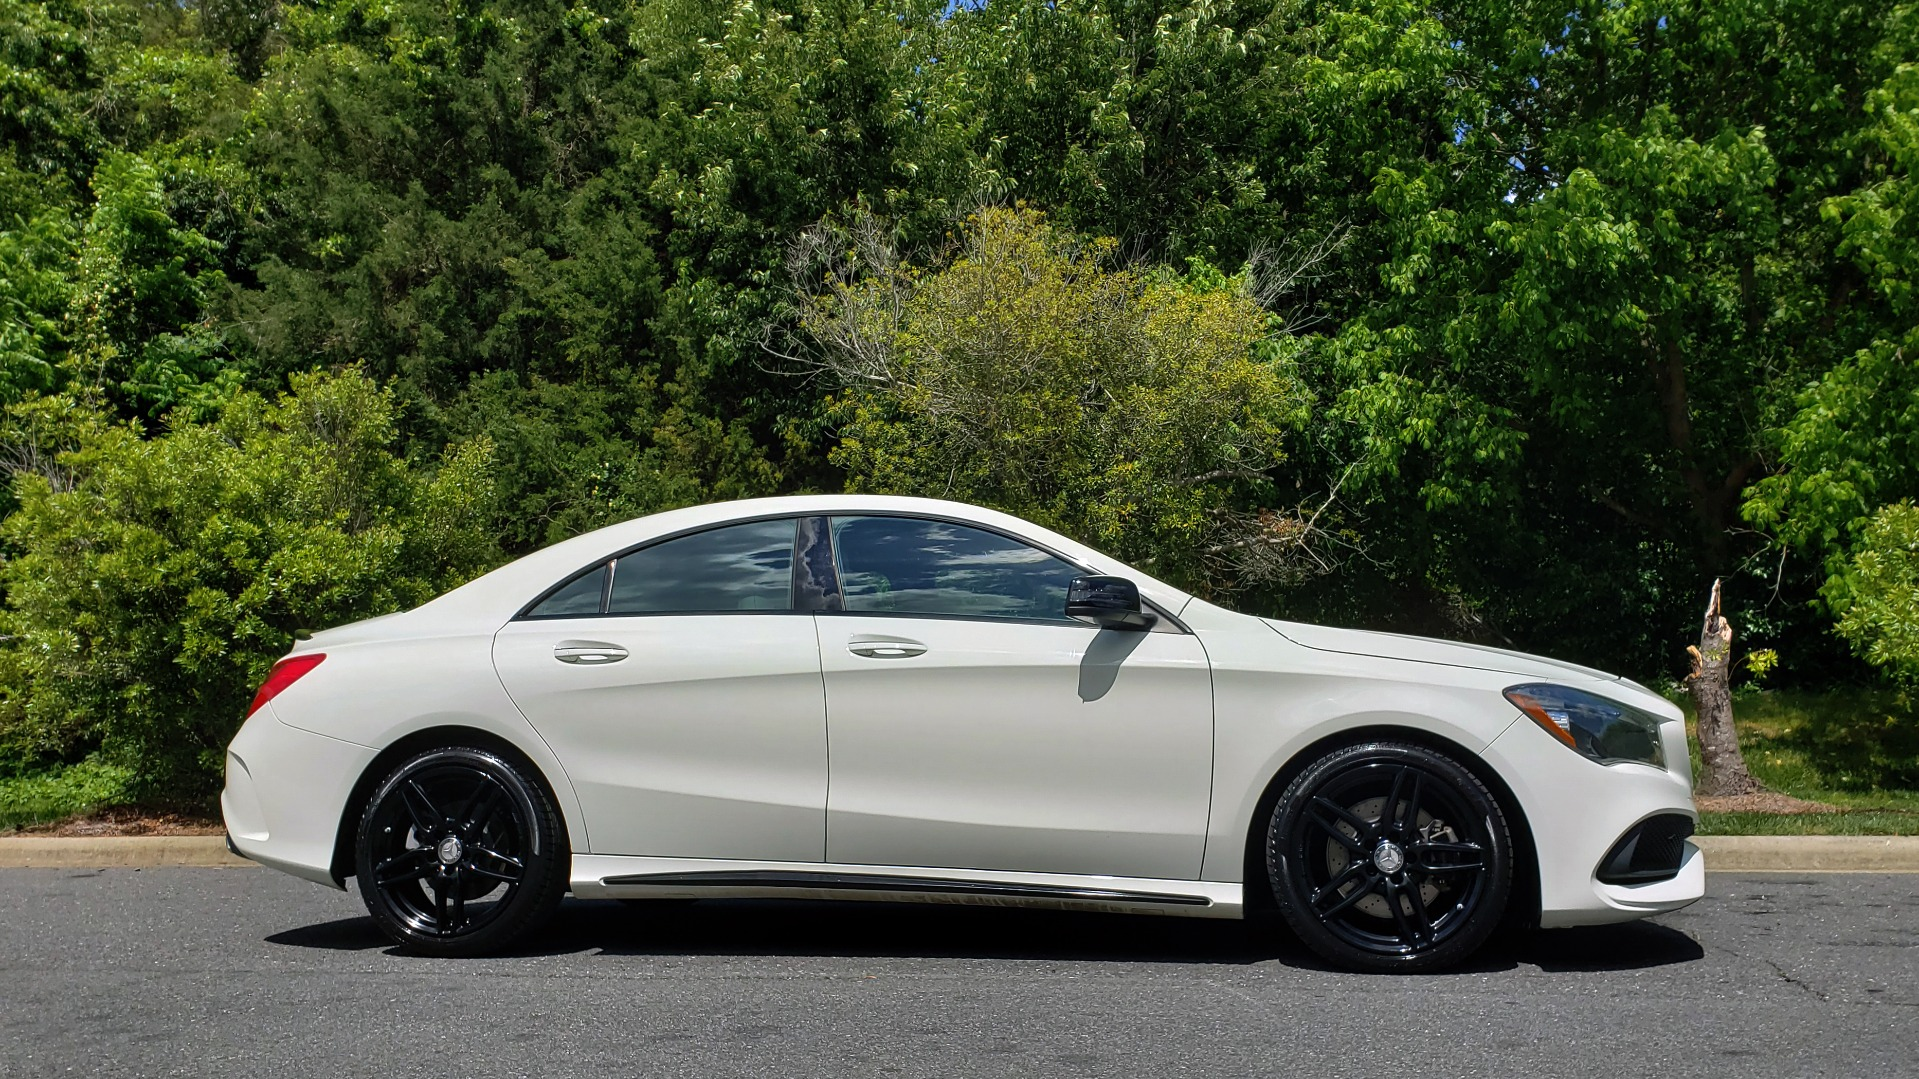 Used 2017 Mercedes-Benz CLA 250 4MATIC / SPORT / PREMIUM / MULTI MEDIA / NIGHT PKG / PANO-ROOF for sale Sold at Formula Imports in Charlotte NC 28227 6